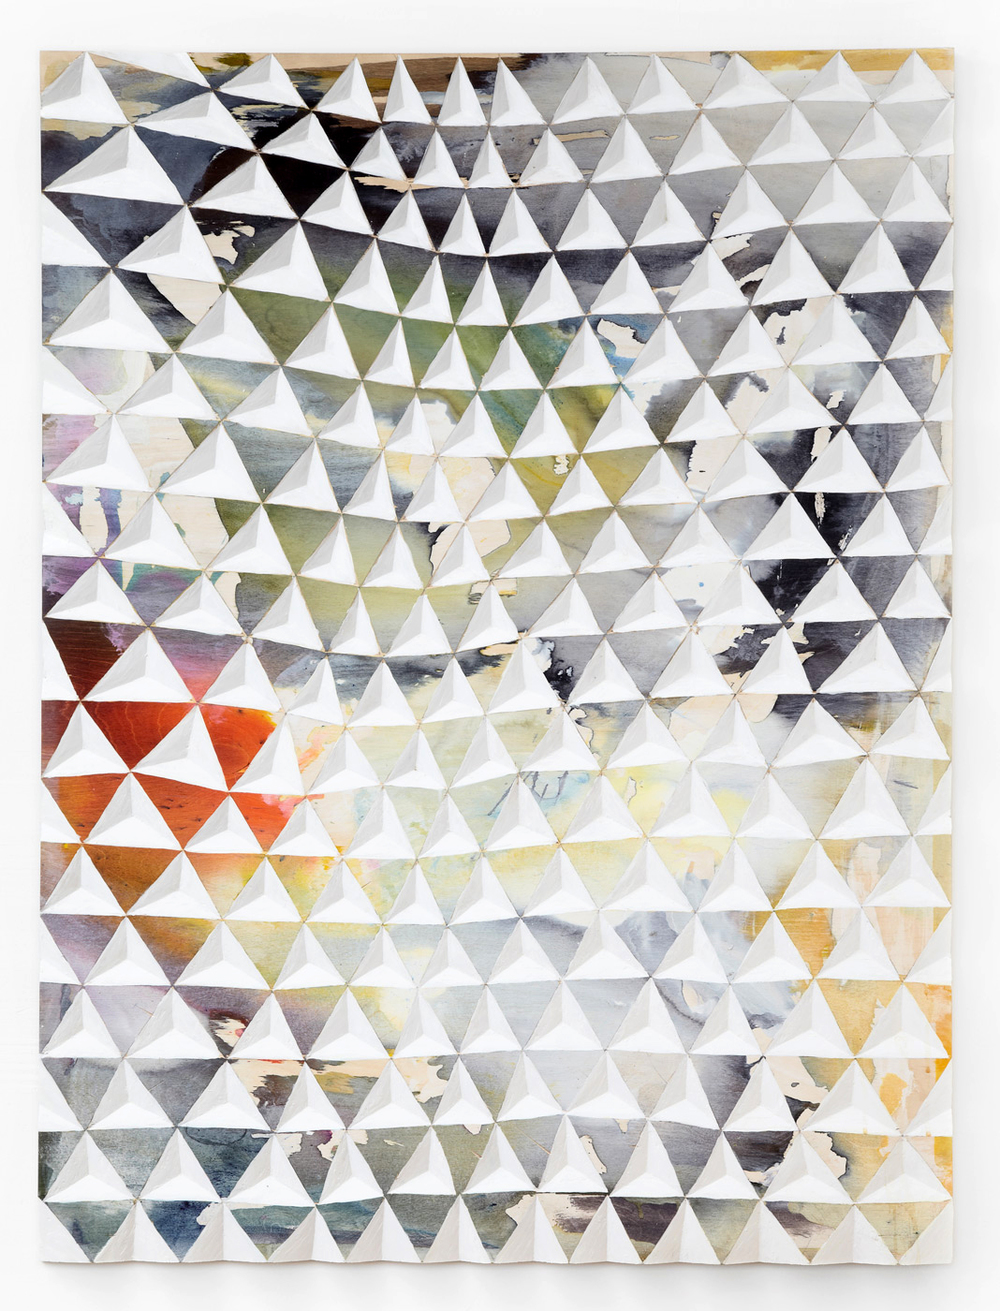 Gerard Mullin, Untitled, 2013, watercolour, wood dye acrylic on wood, 48 x 36 inches